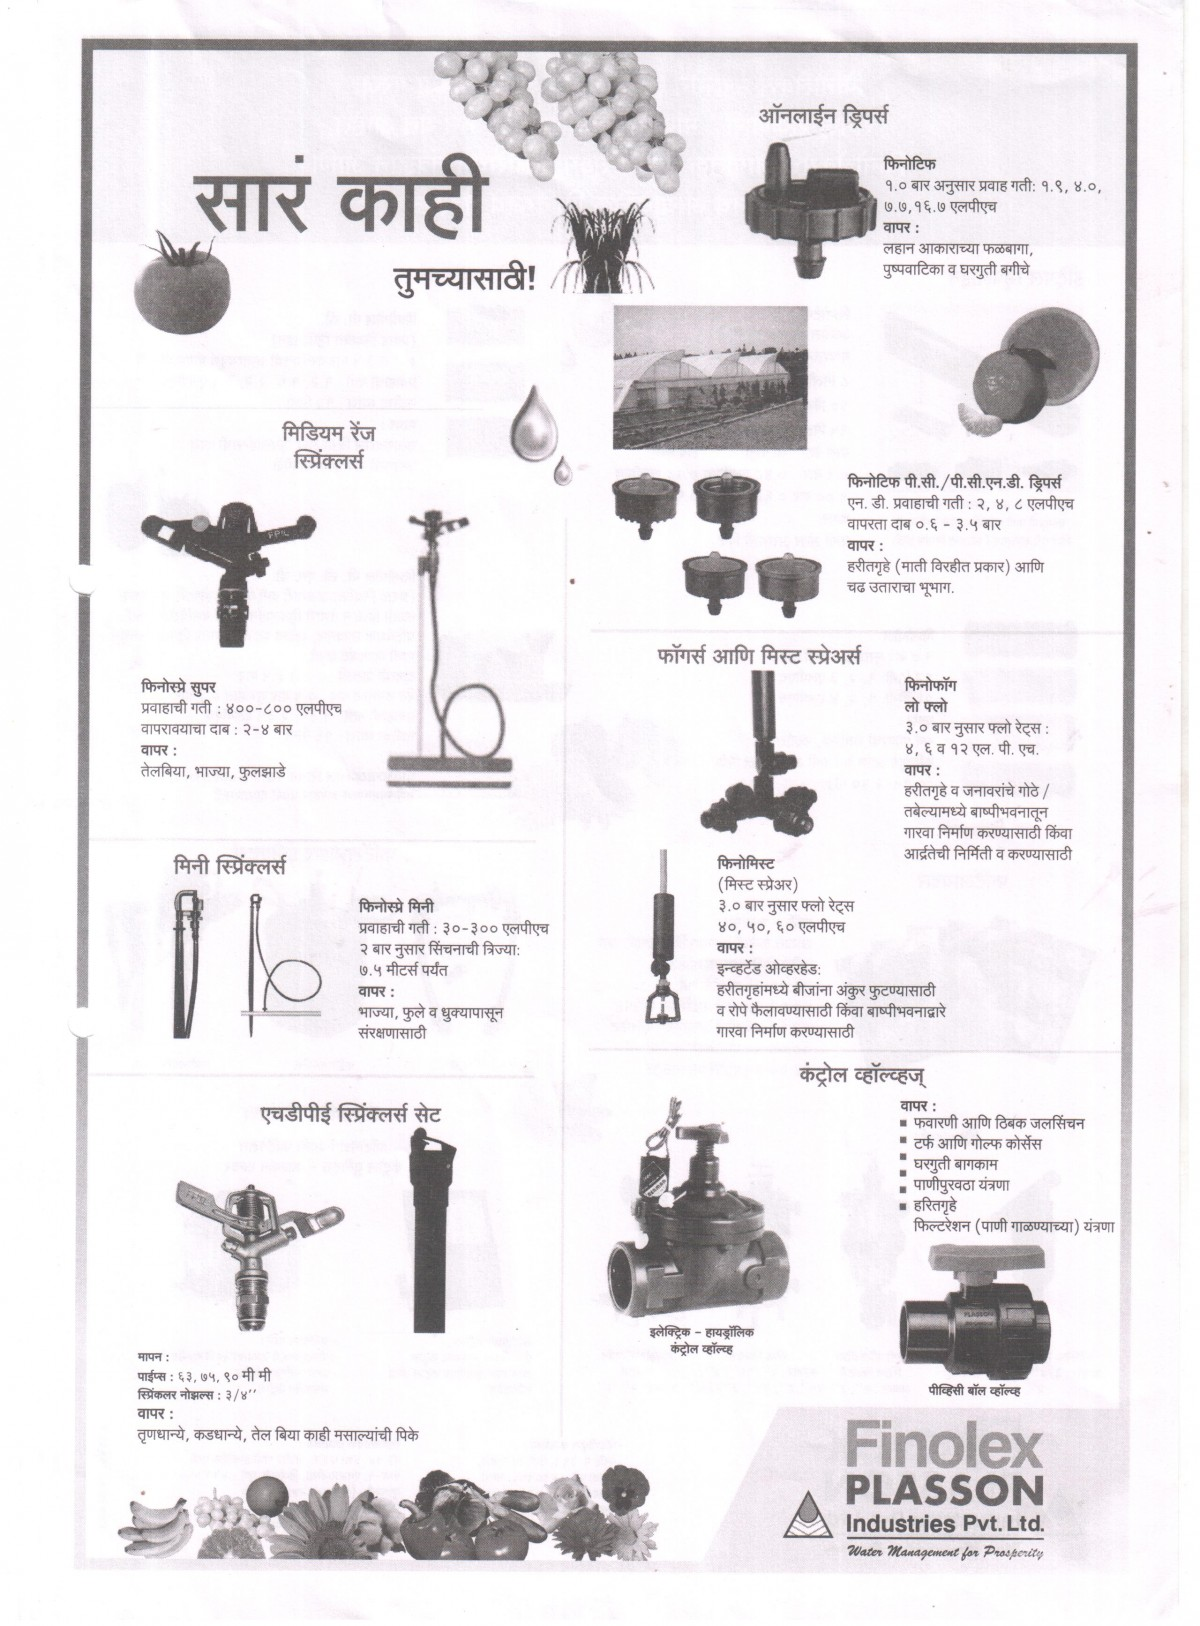 Finolex Plasson Industries Pvt Ltd Pumps Motors And Drip